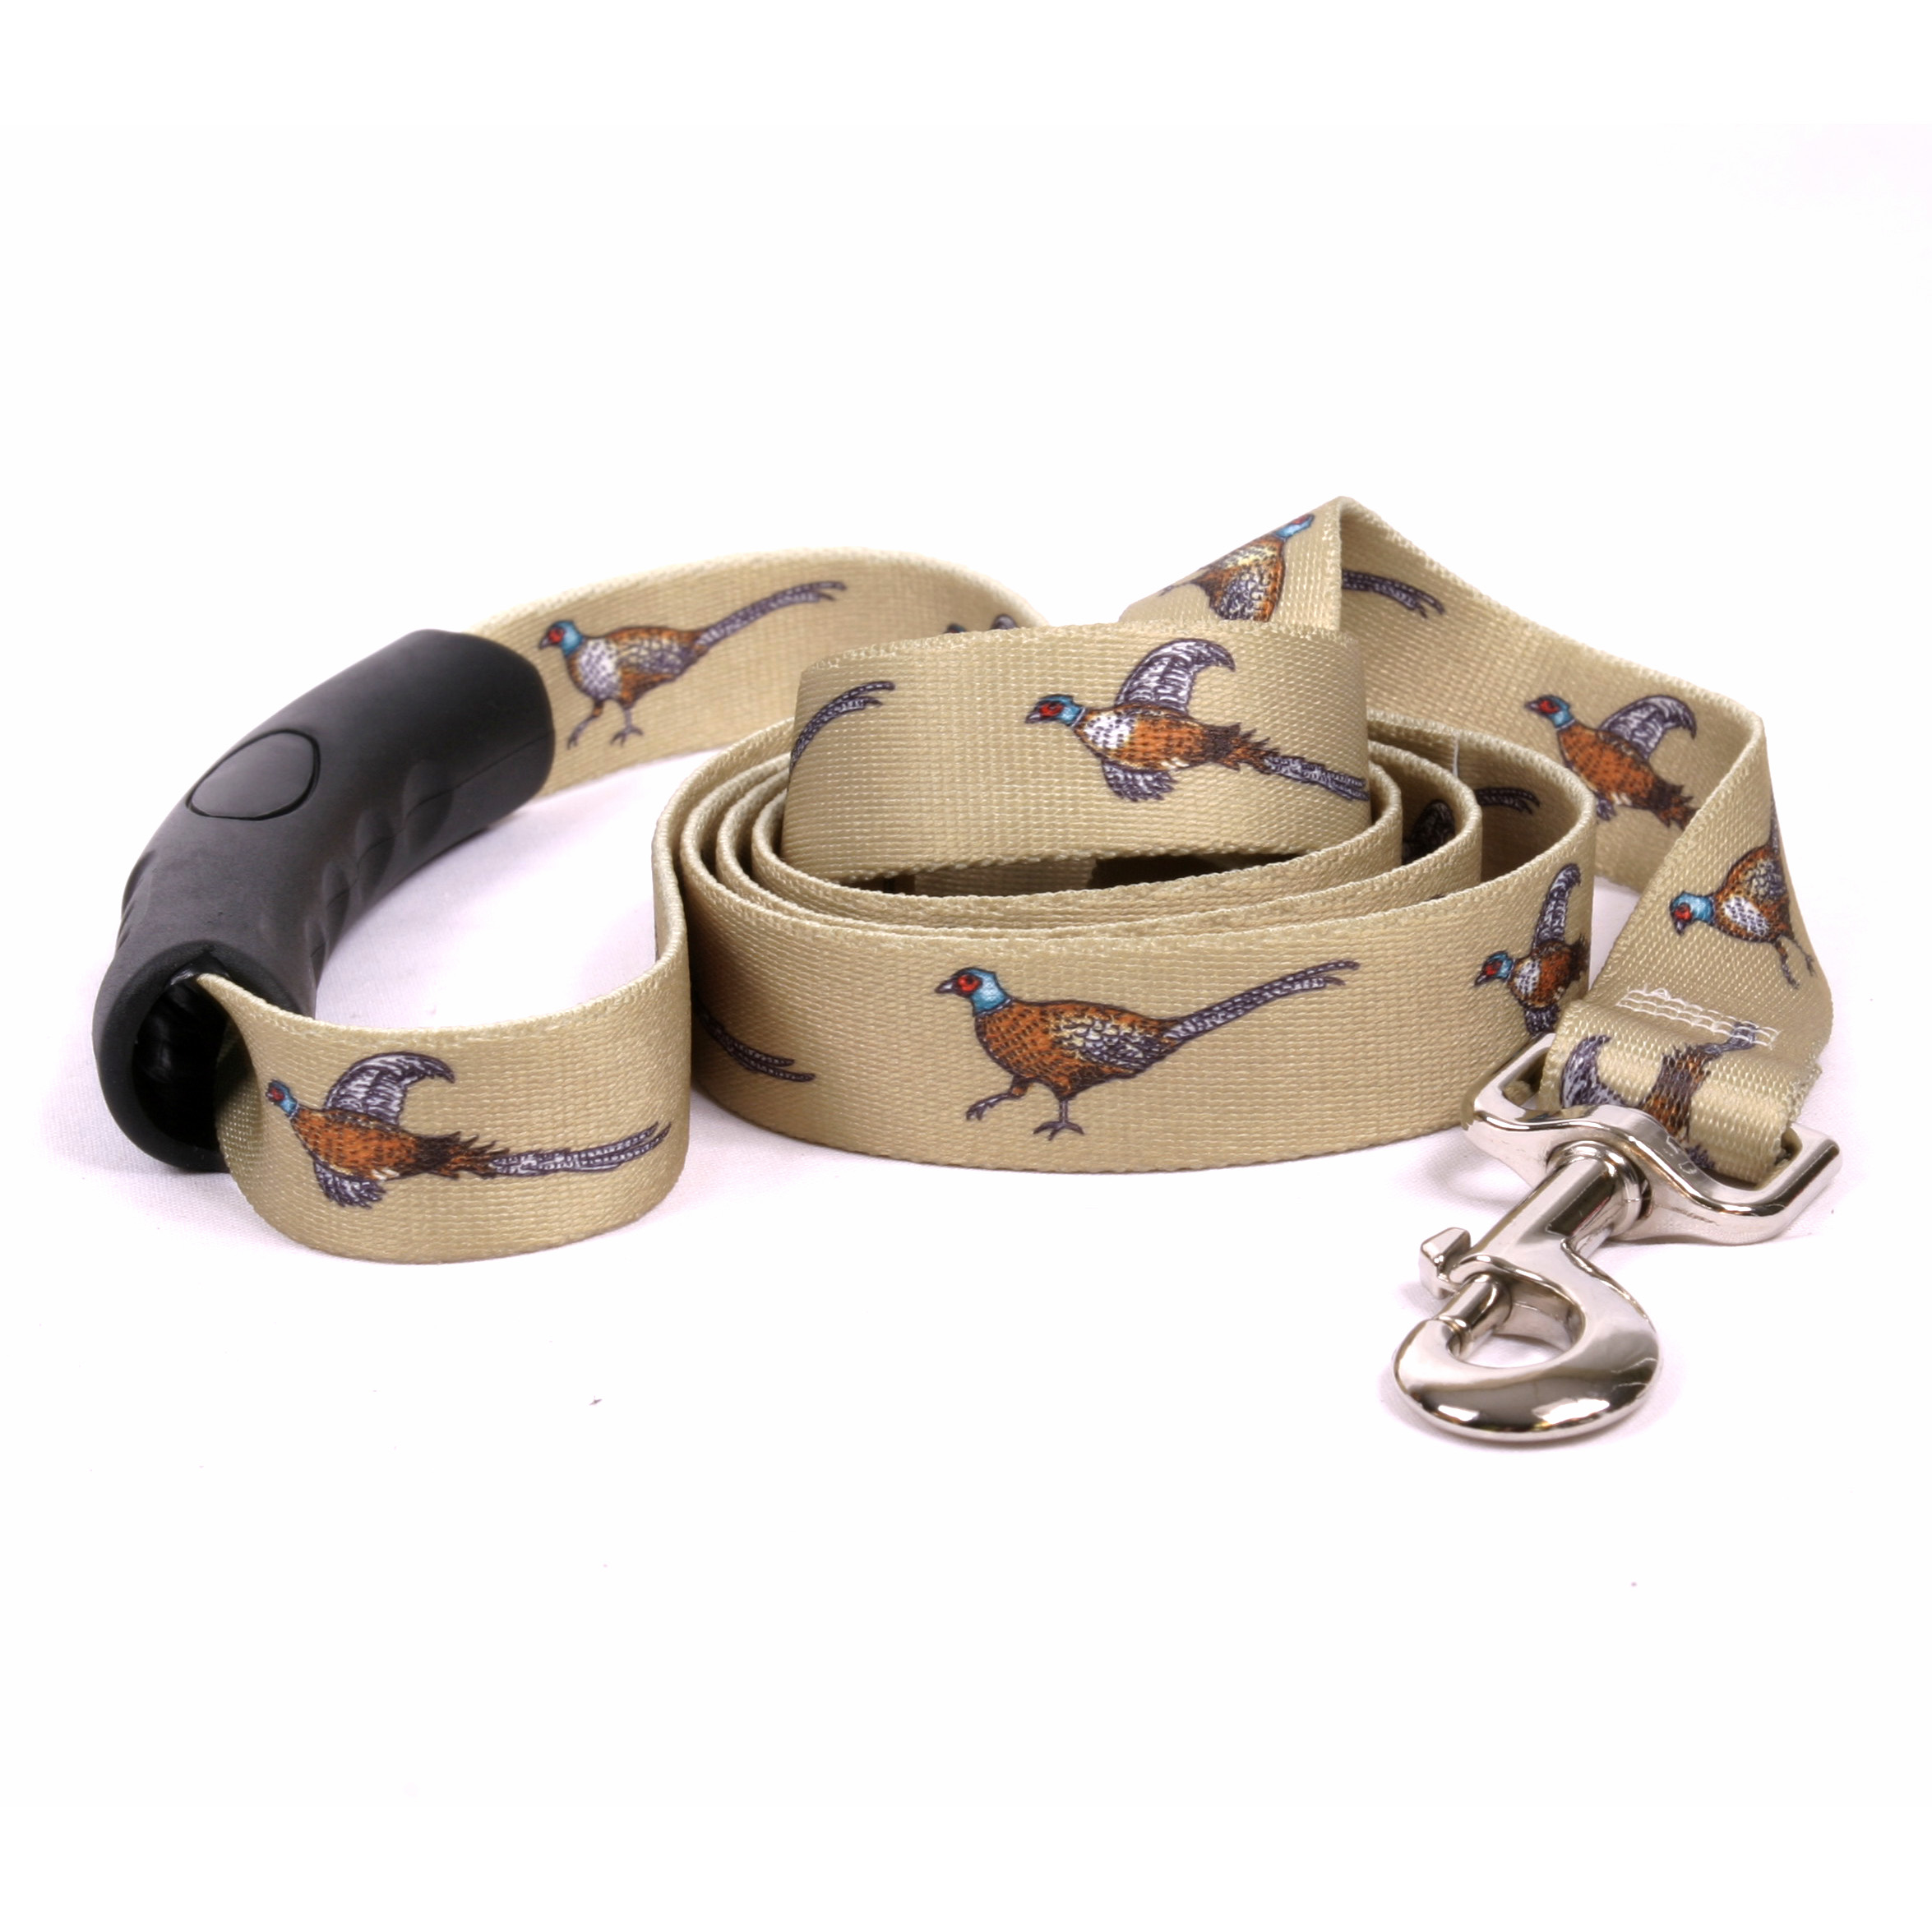 Pheasants EZ-Lead